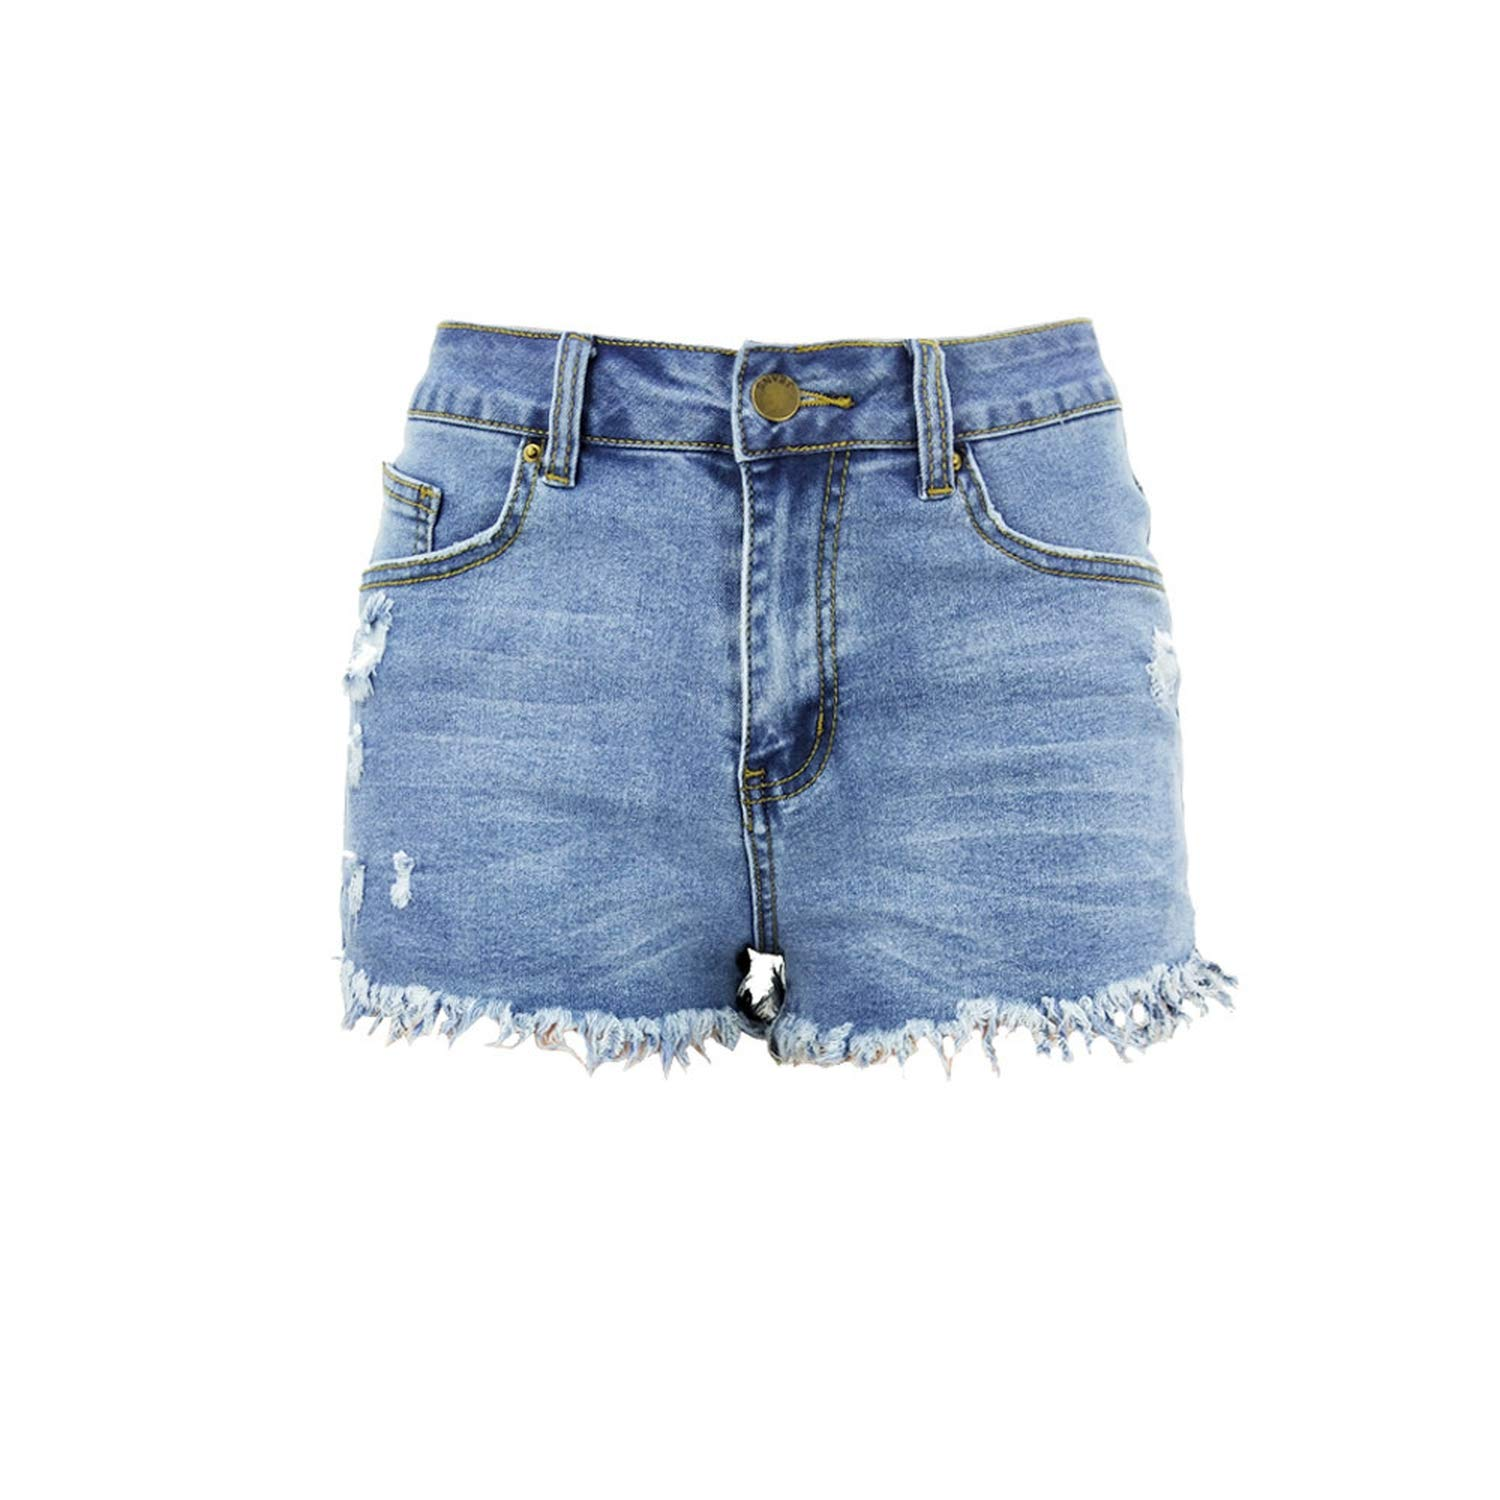 Sky bluee Vintage Ripped Hole Fringe Denim Shorts Jeans Women Casual Pocket Jeans Shorts